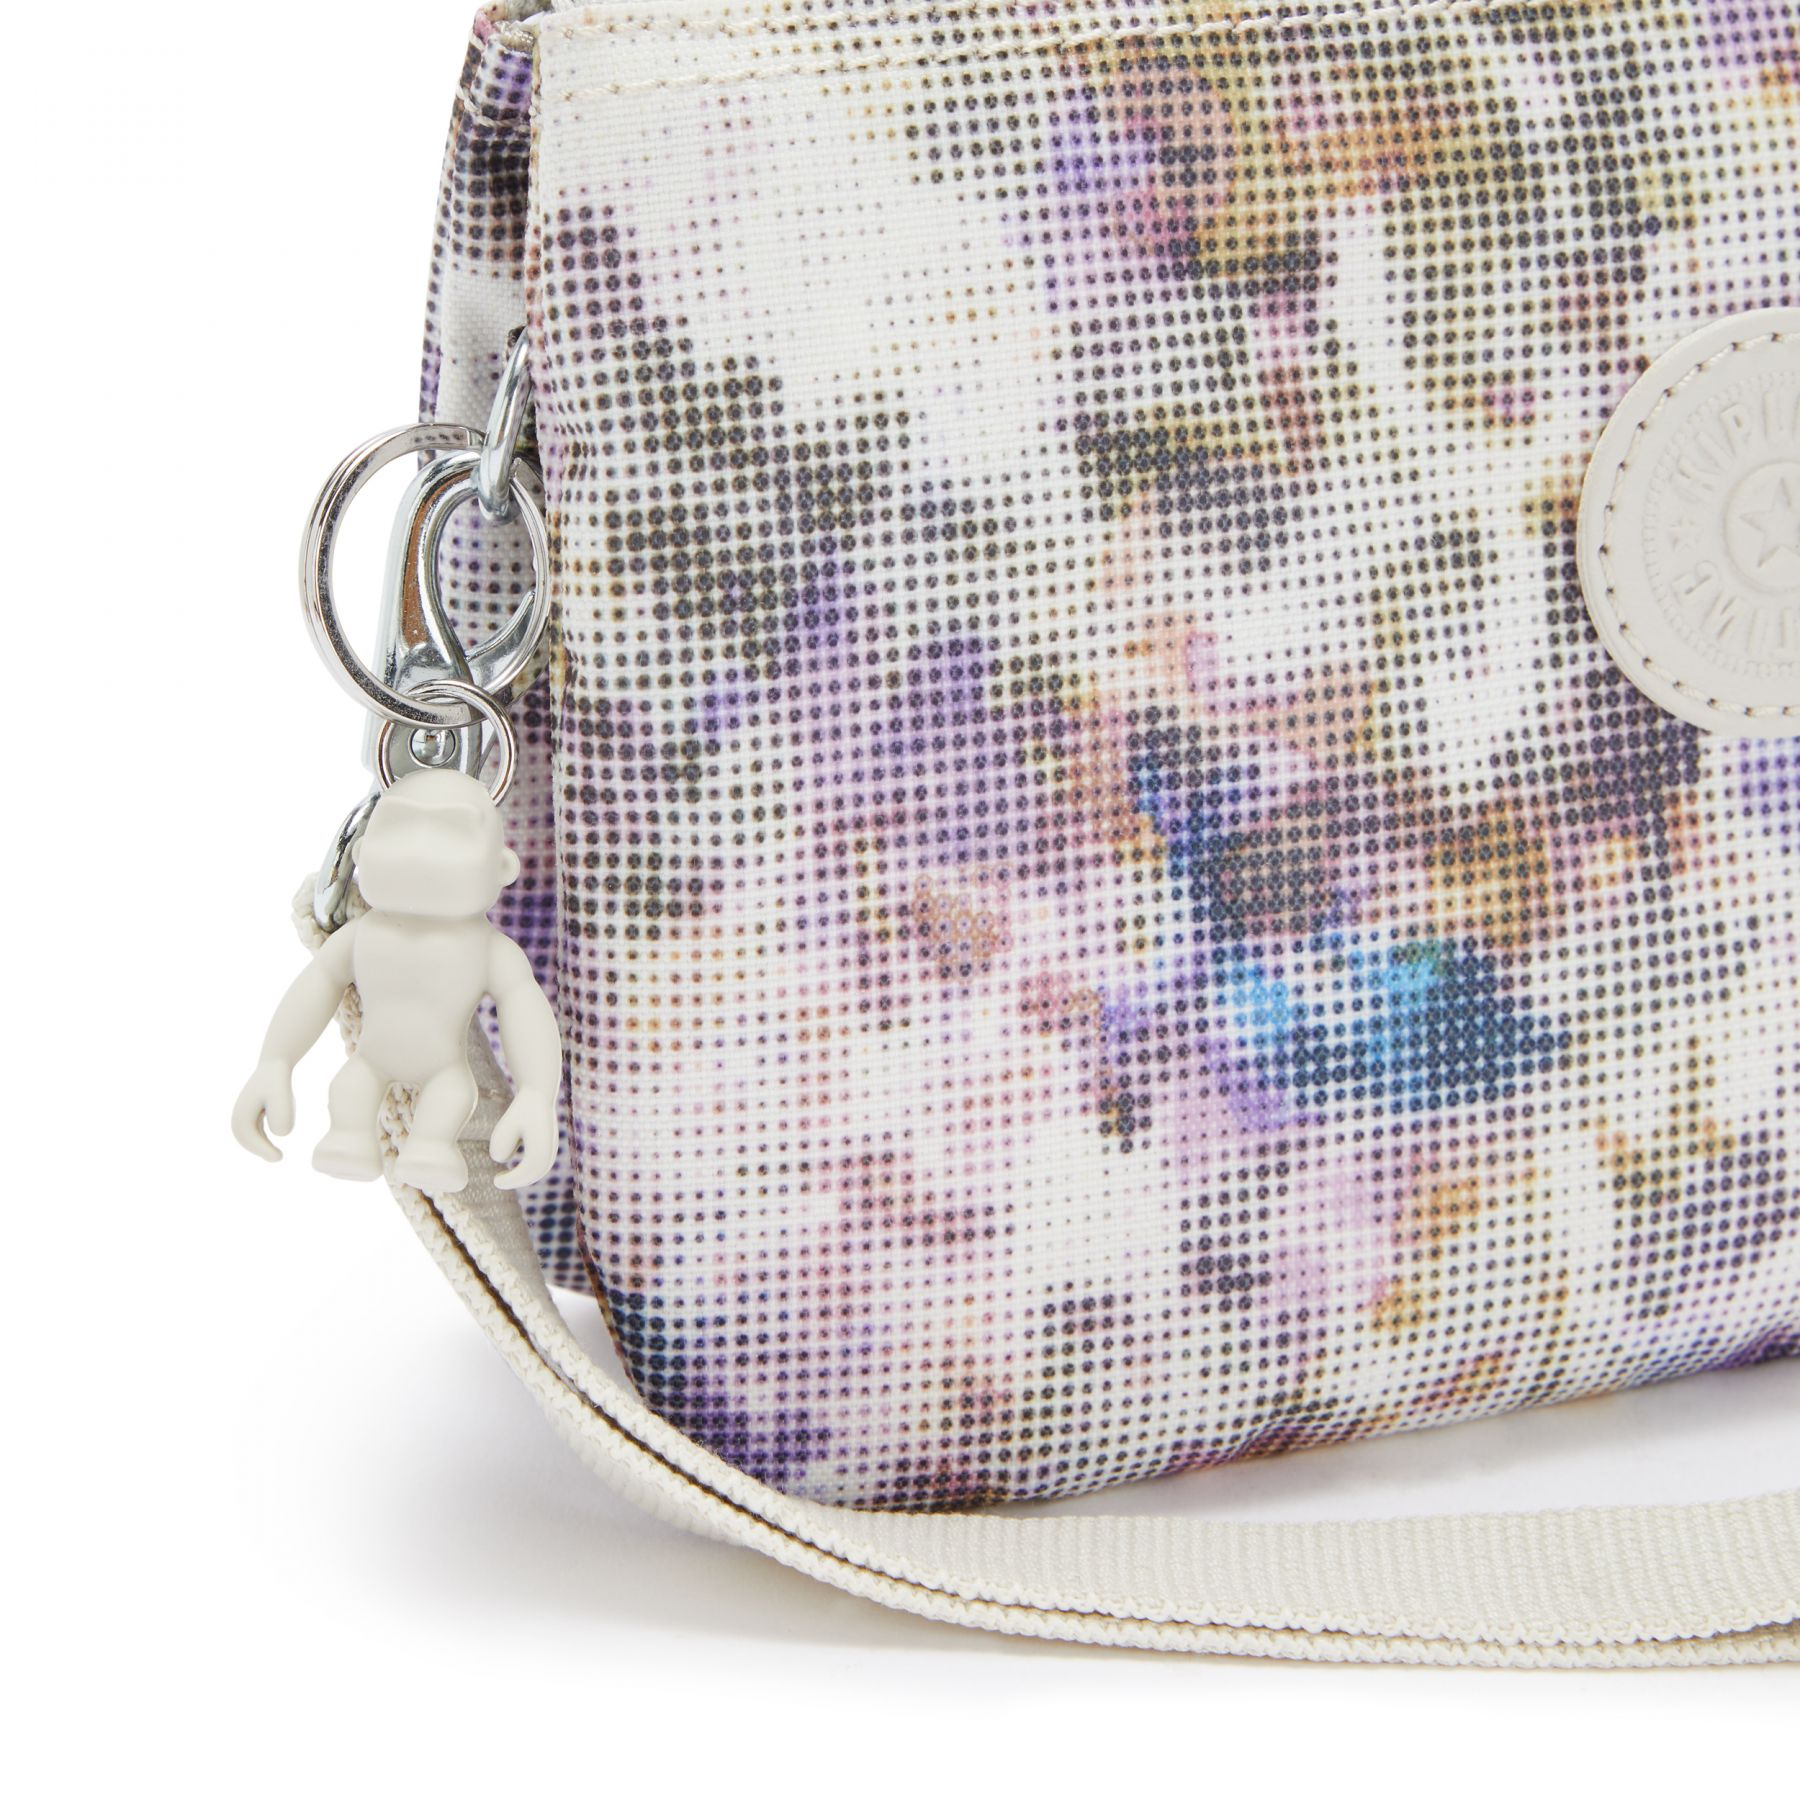 CREATIVITY XL ACCESSORIES by Kipling